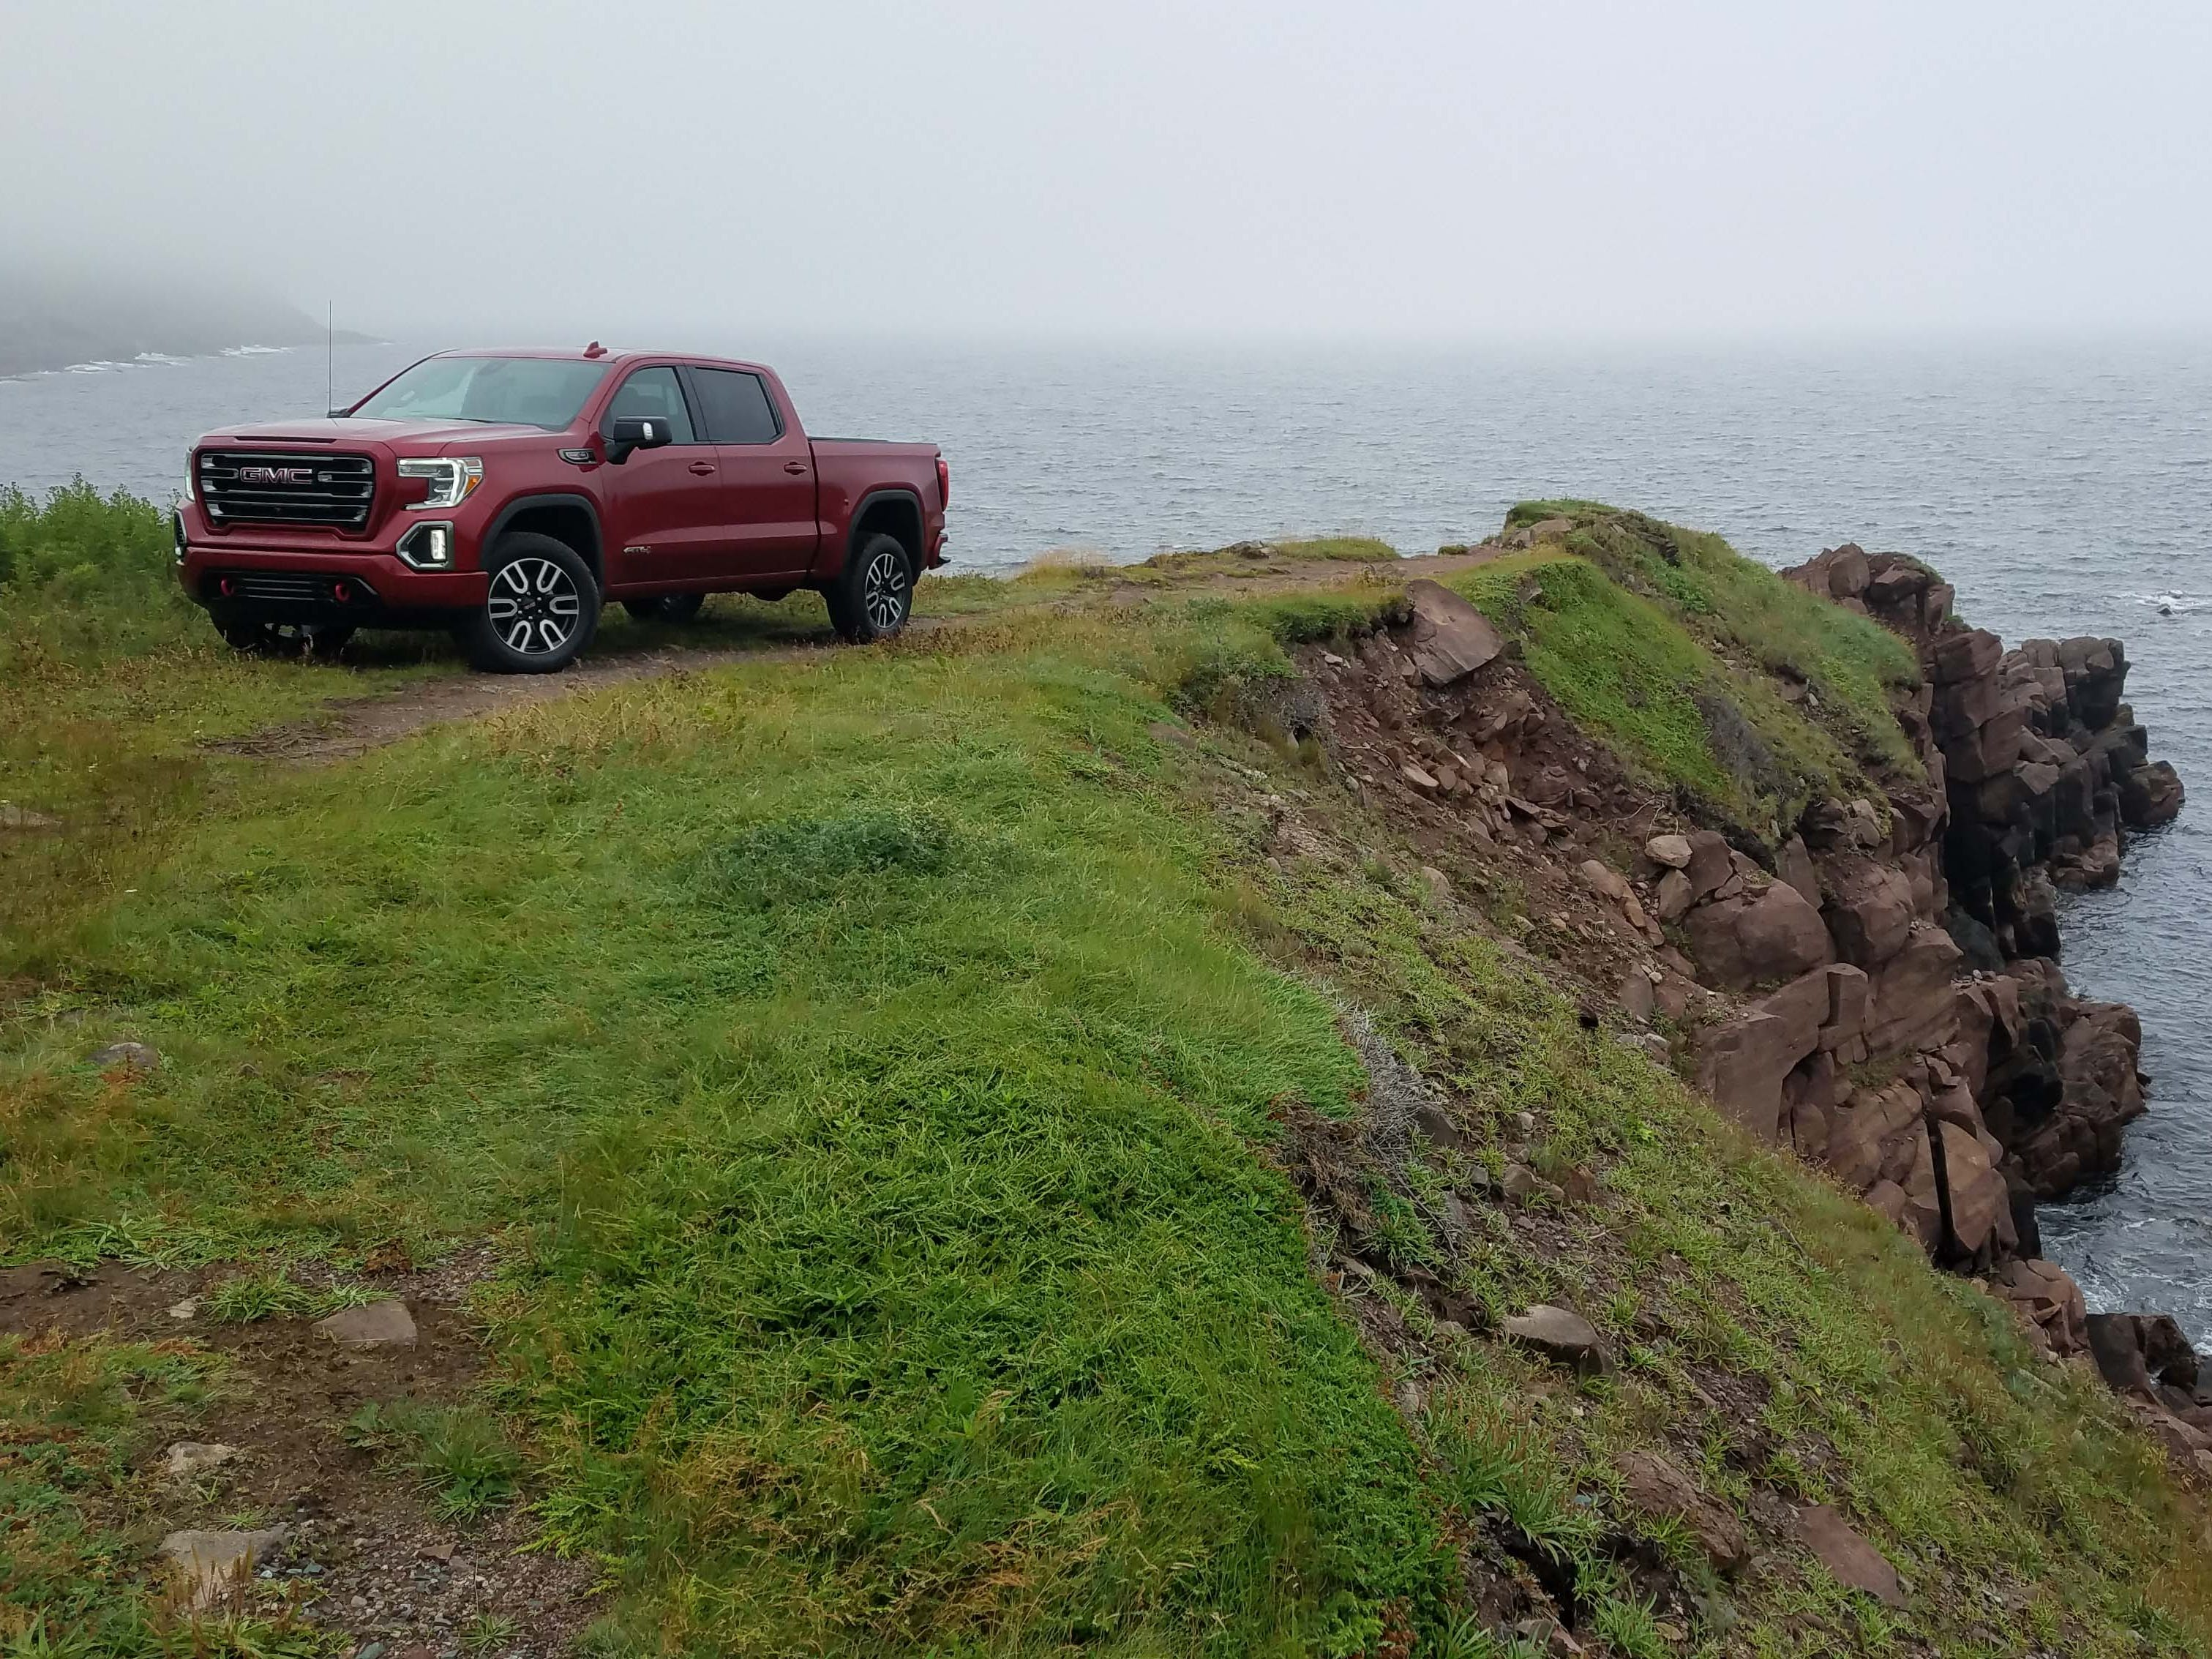 Truck country. GMC introduced its new Sierra pickup on the wind-swept coast of St. John's, Newfoundland.